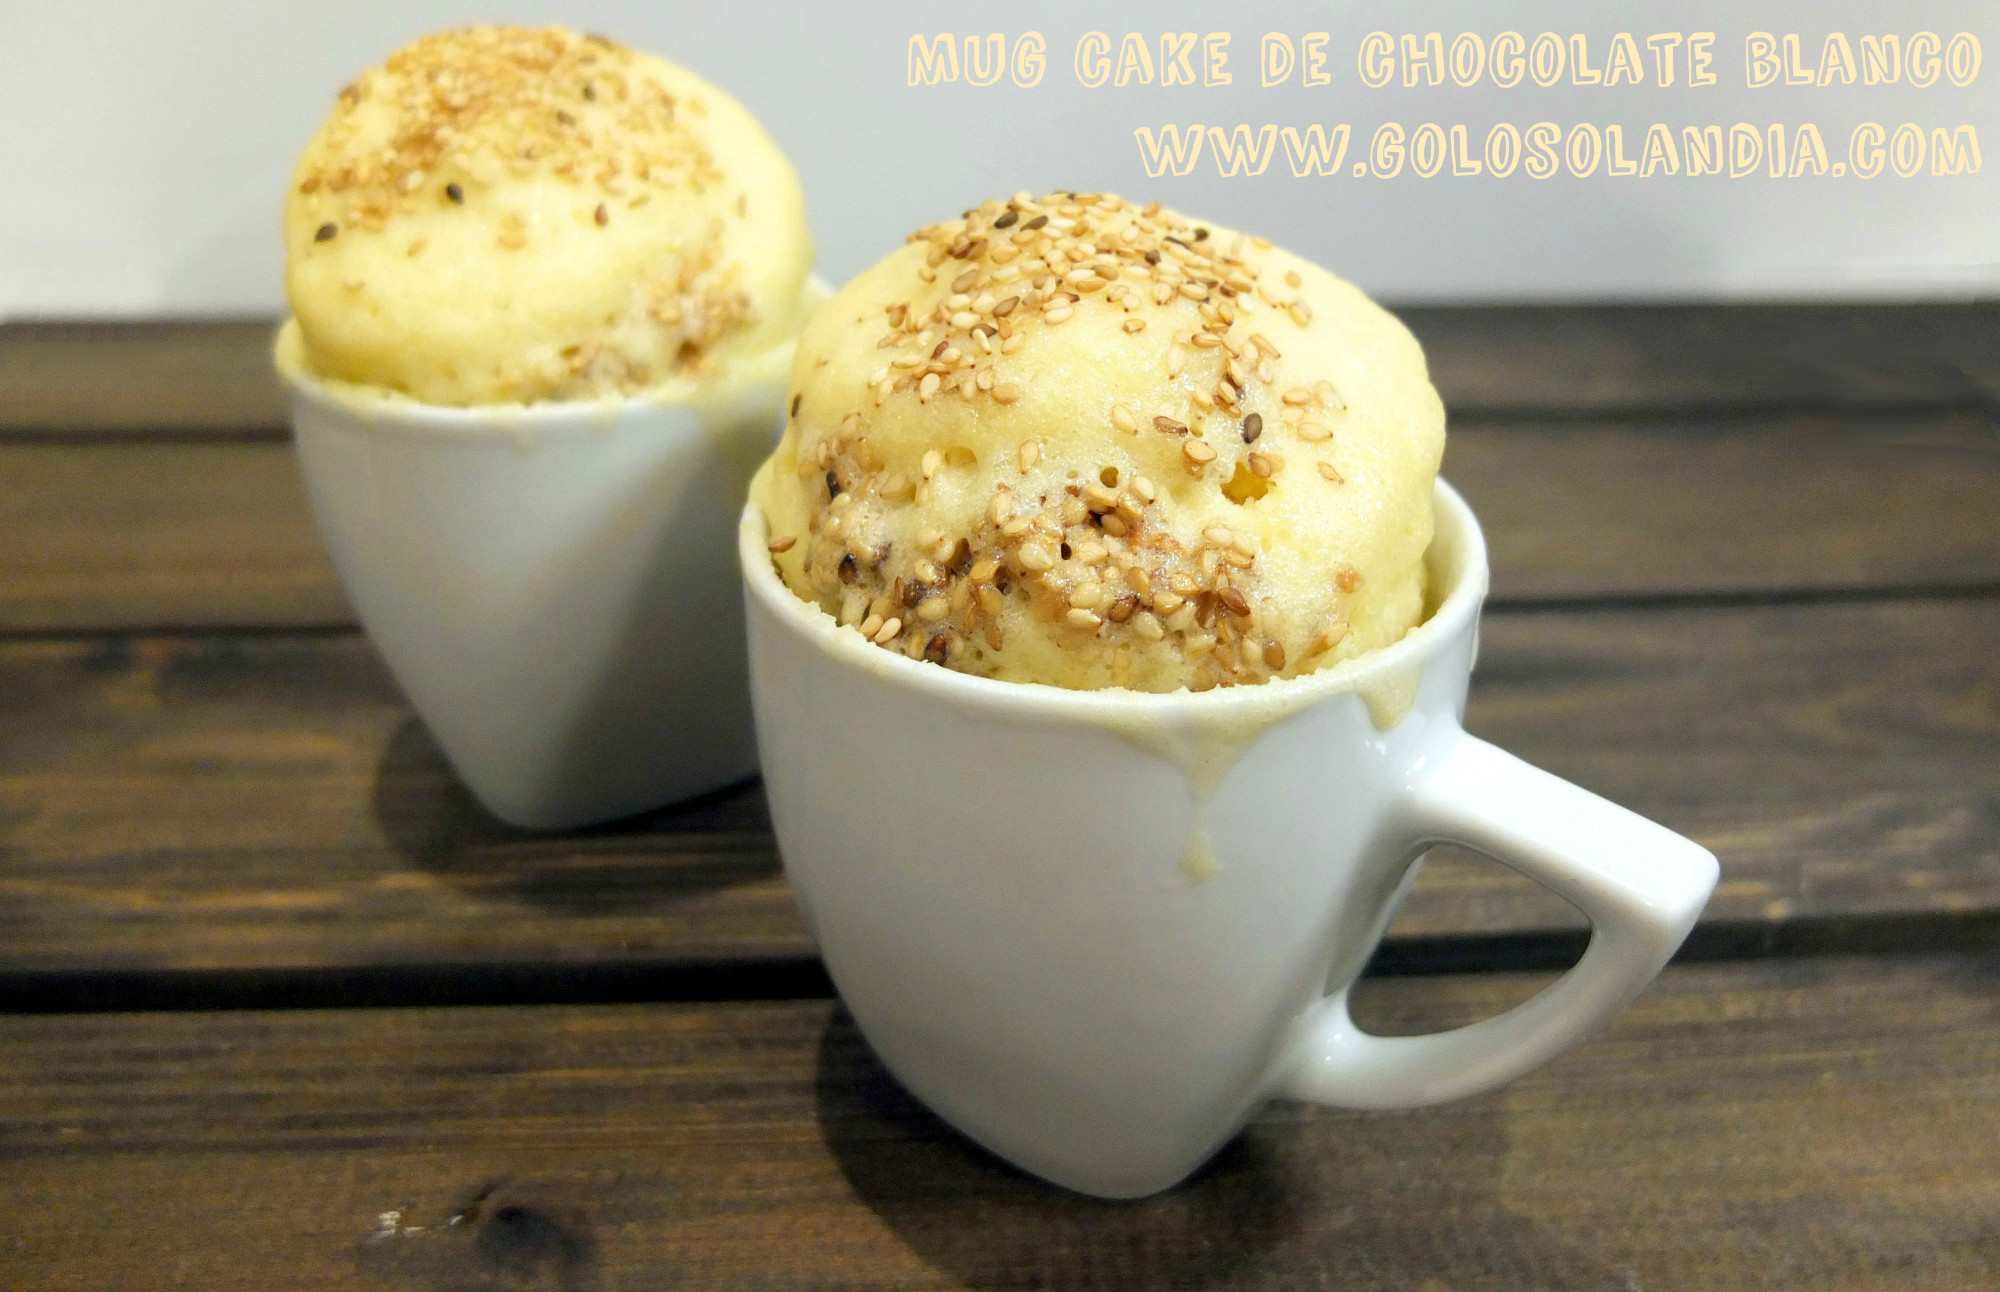 Mug cake de chocolate blanco